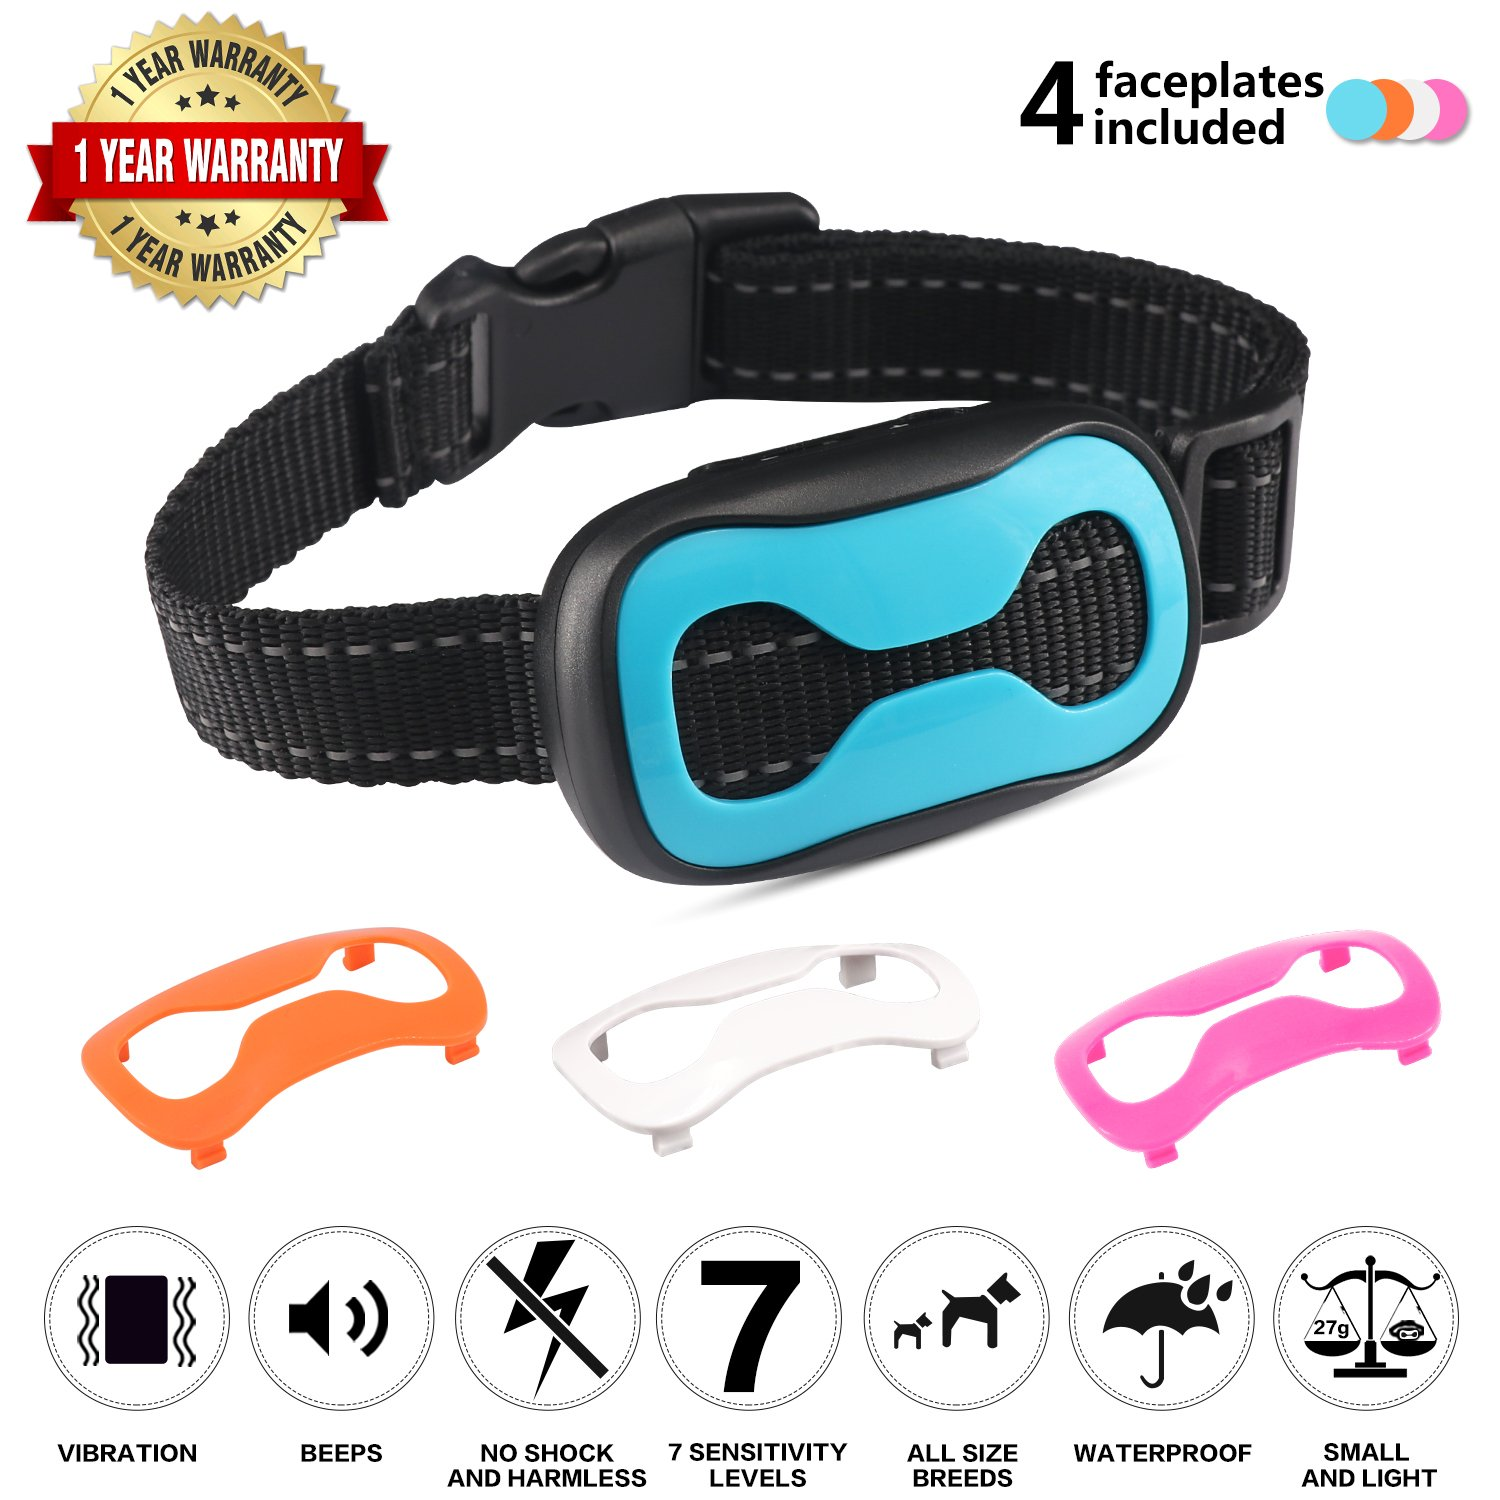 Dog Bark Collar Anti Bark – Waterproof Beep Sound Vibration Collar 7 Sensitivity Levels Adjustable Reflective Strip Anti Bark Collar for Small Medium Dogs Barking Control Training – No Harm for Dogs